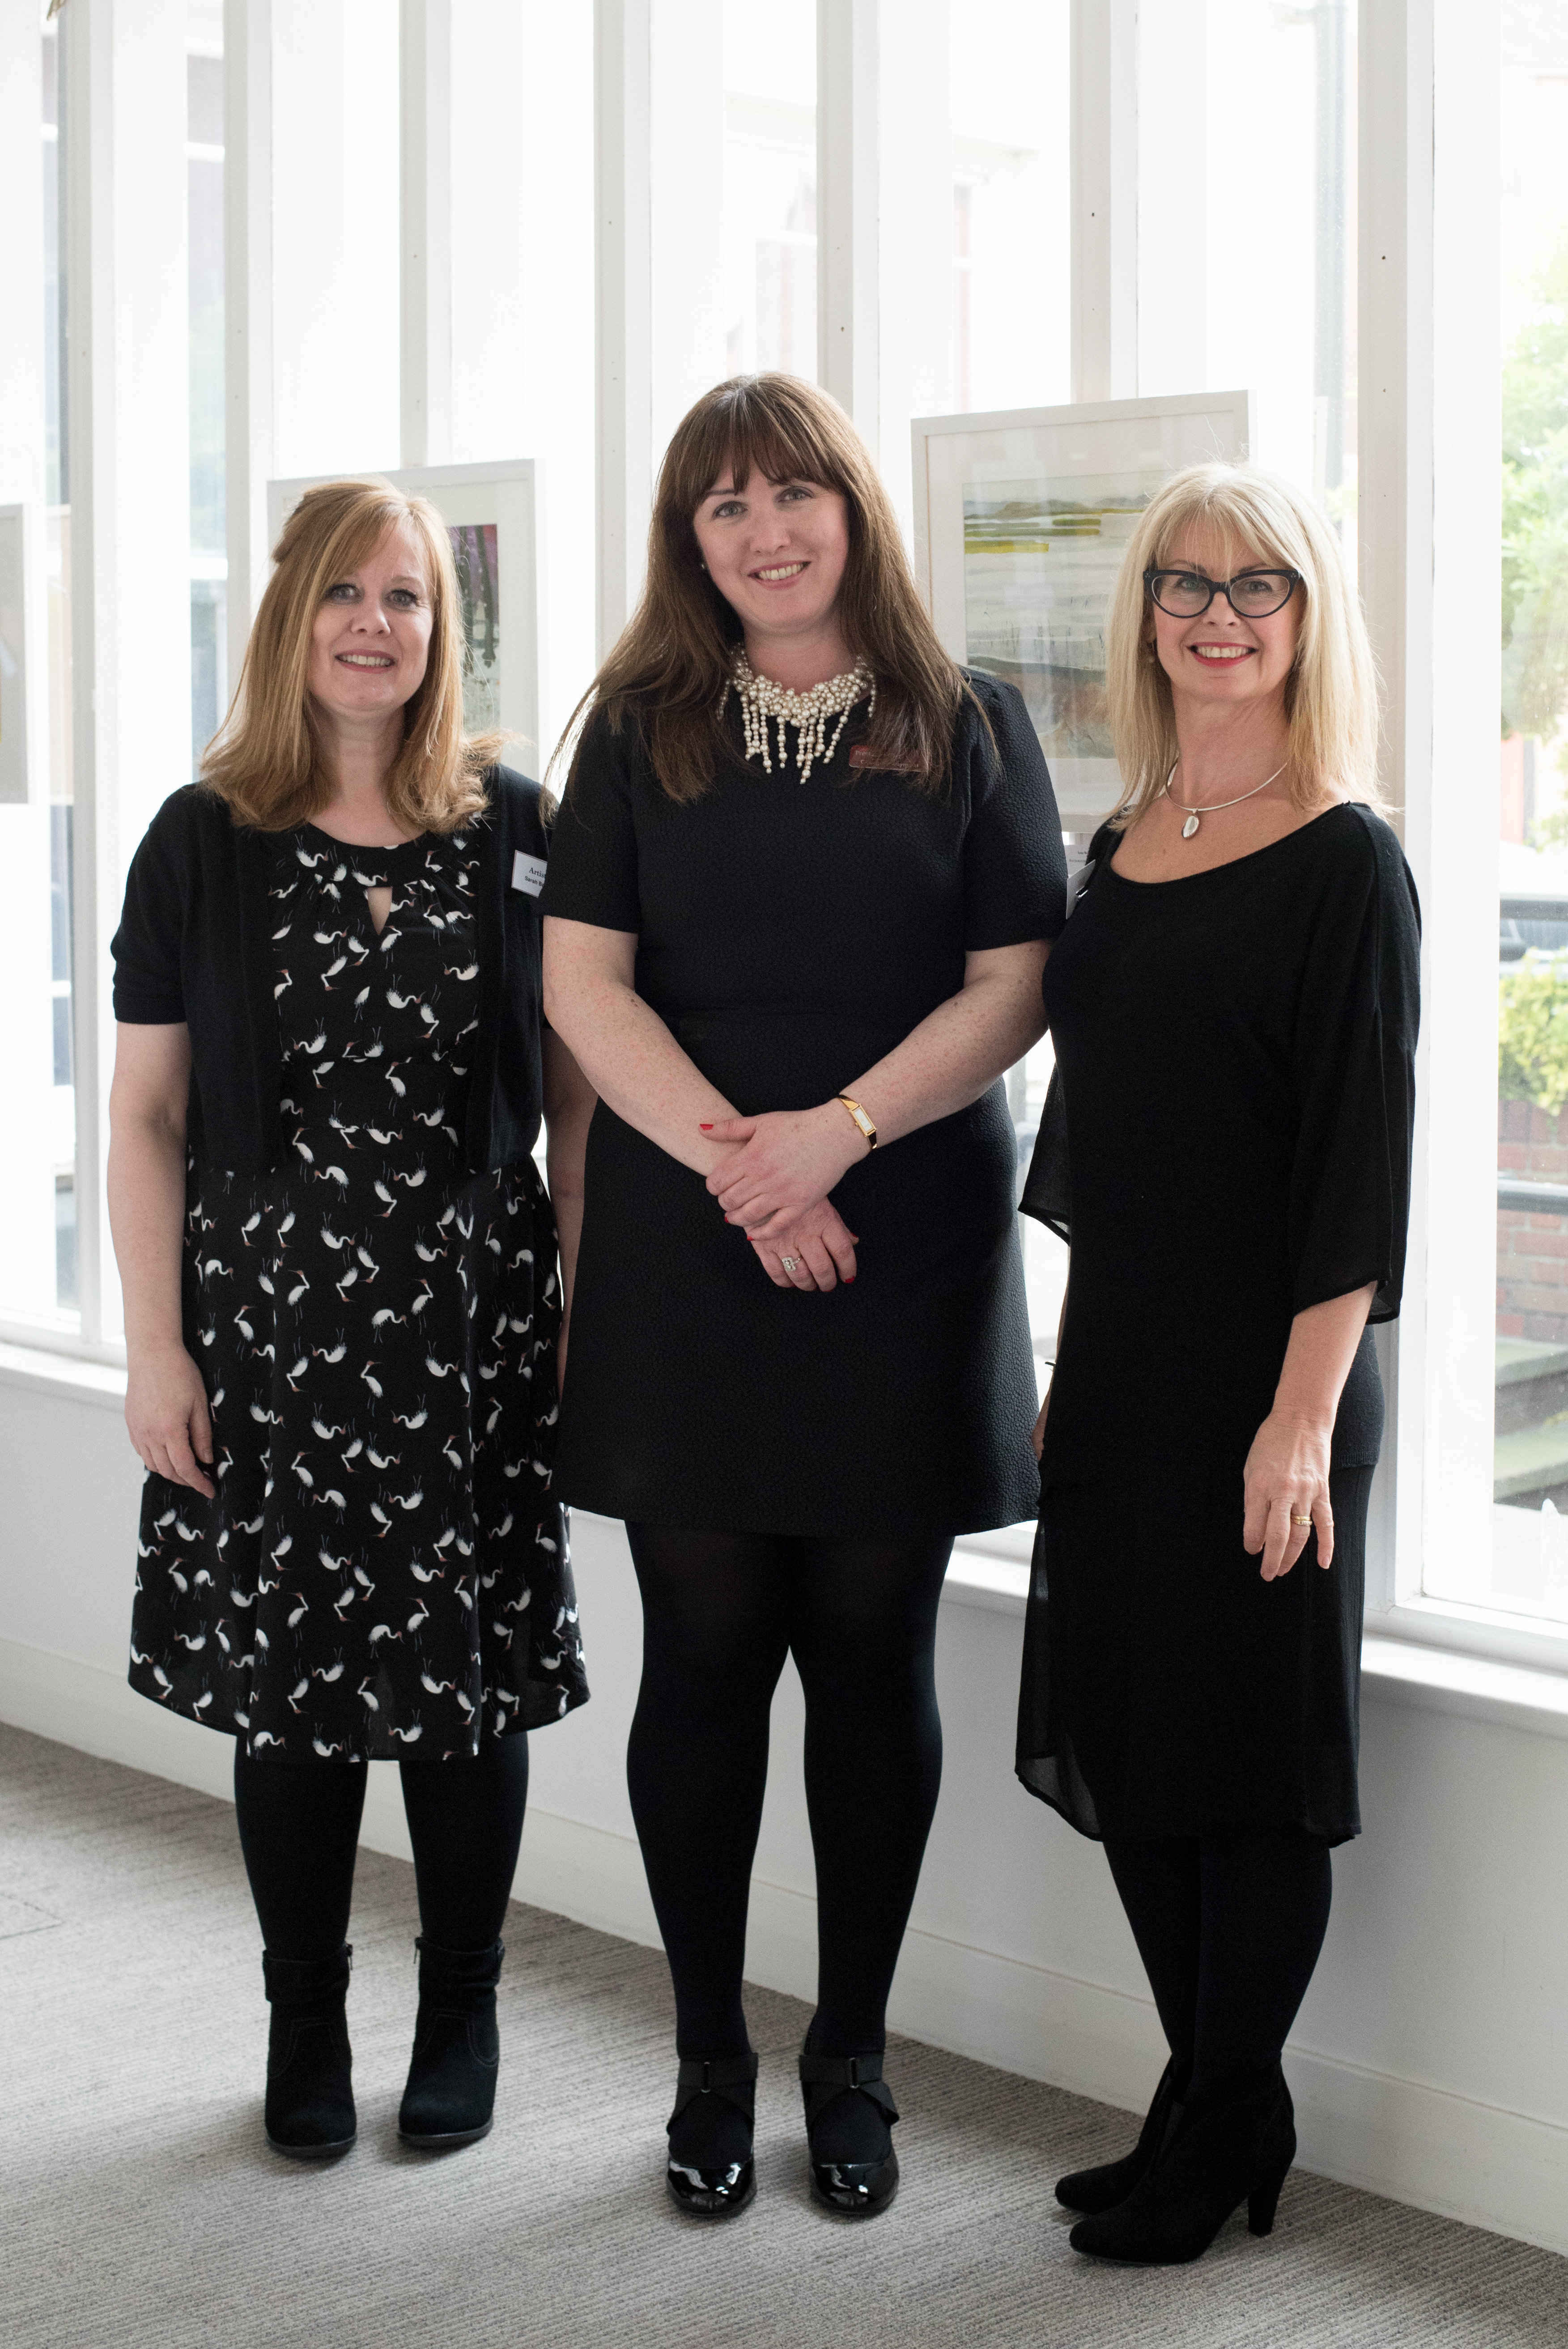 Exhibition curators Sarah Bale and Julie Dodds with organiser Georgina Rayment from Prettys